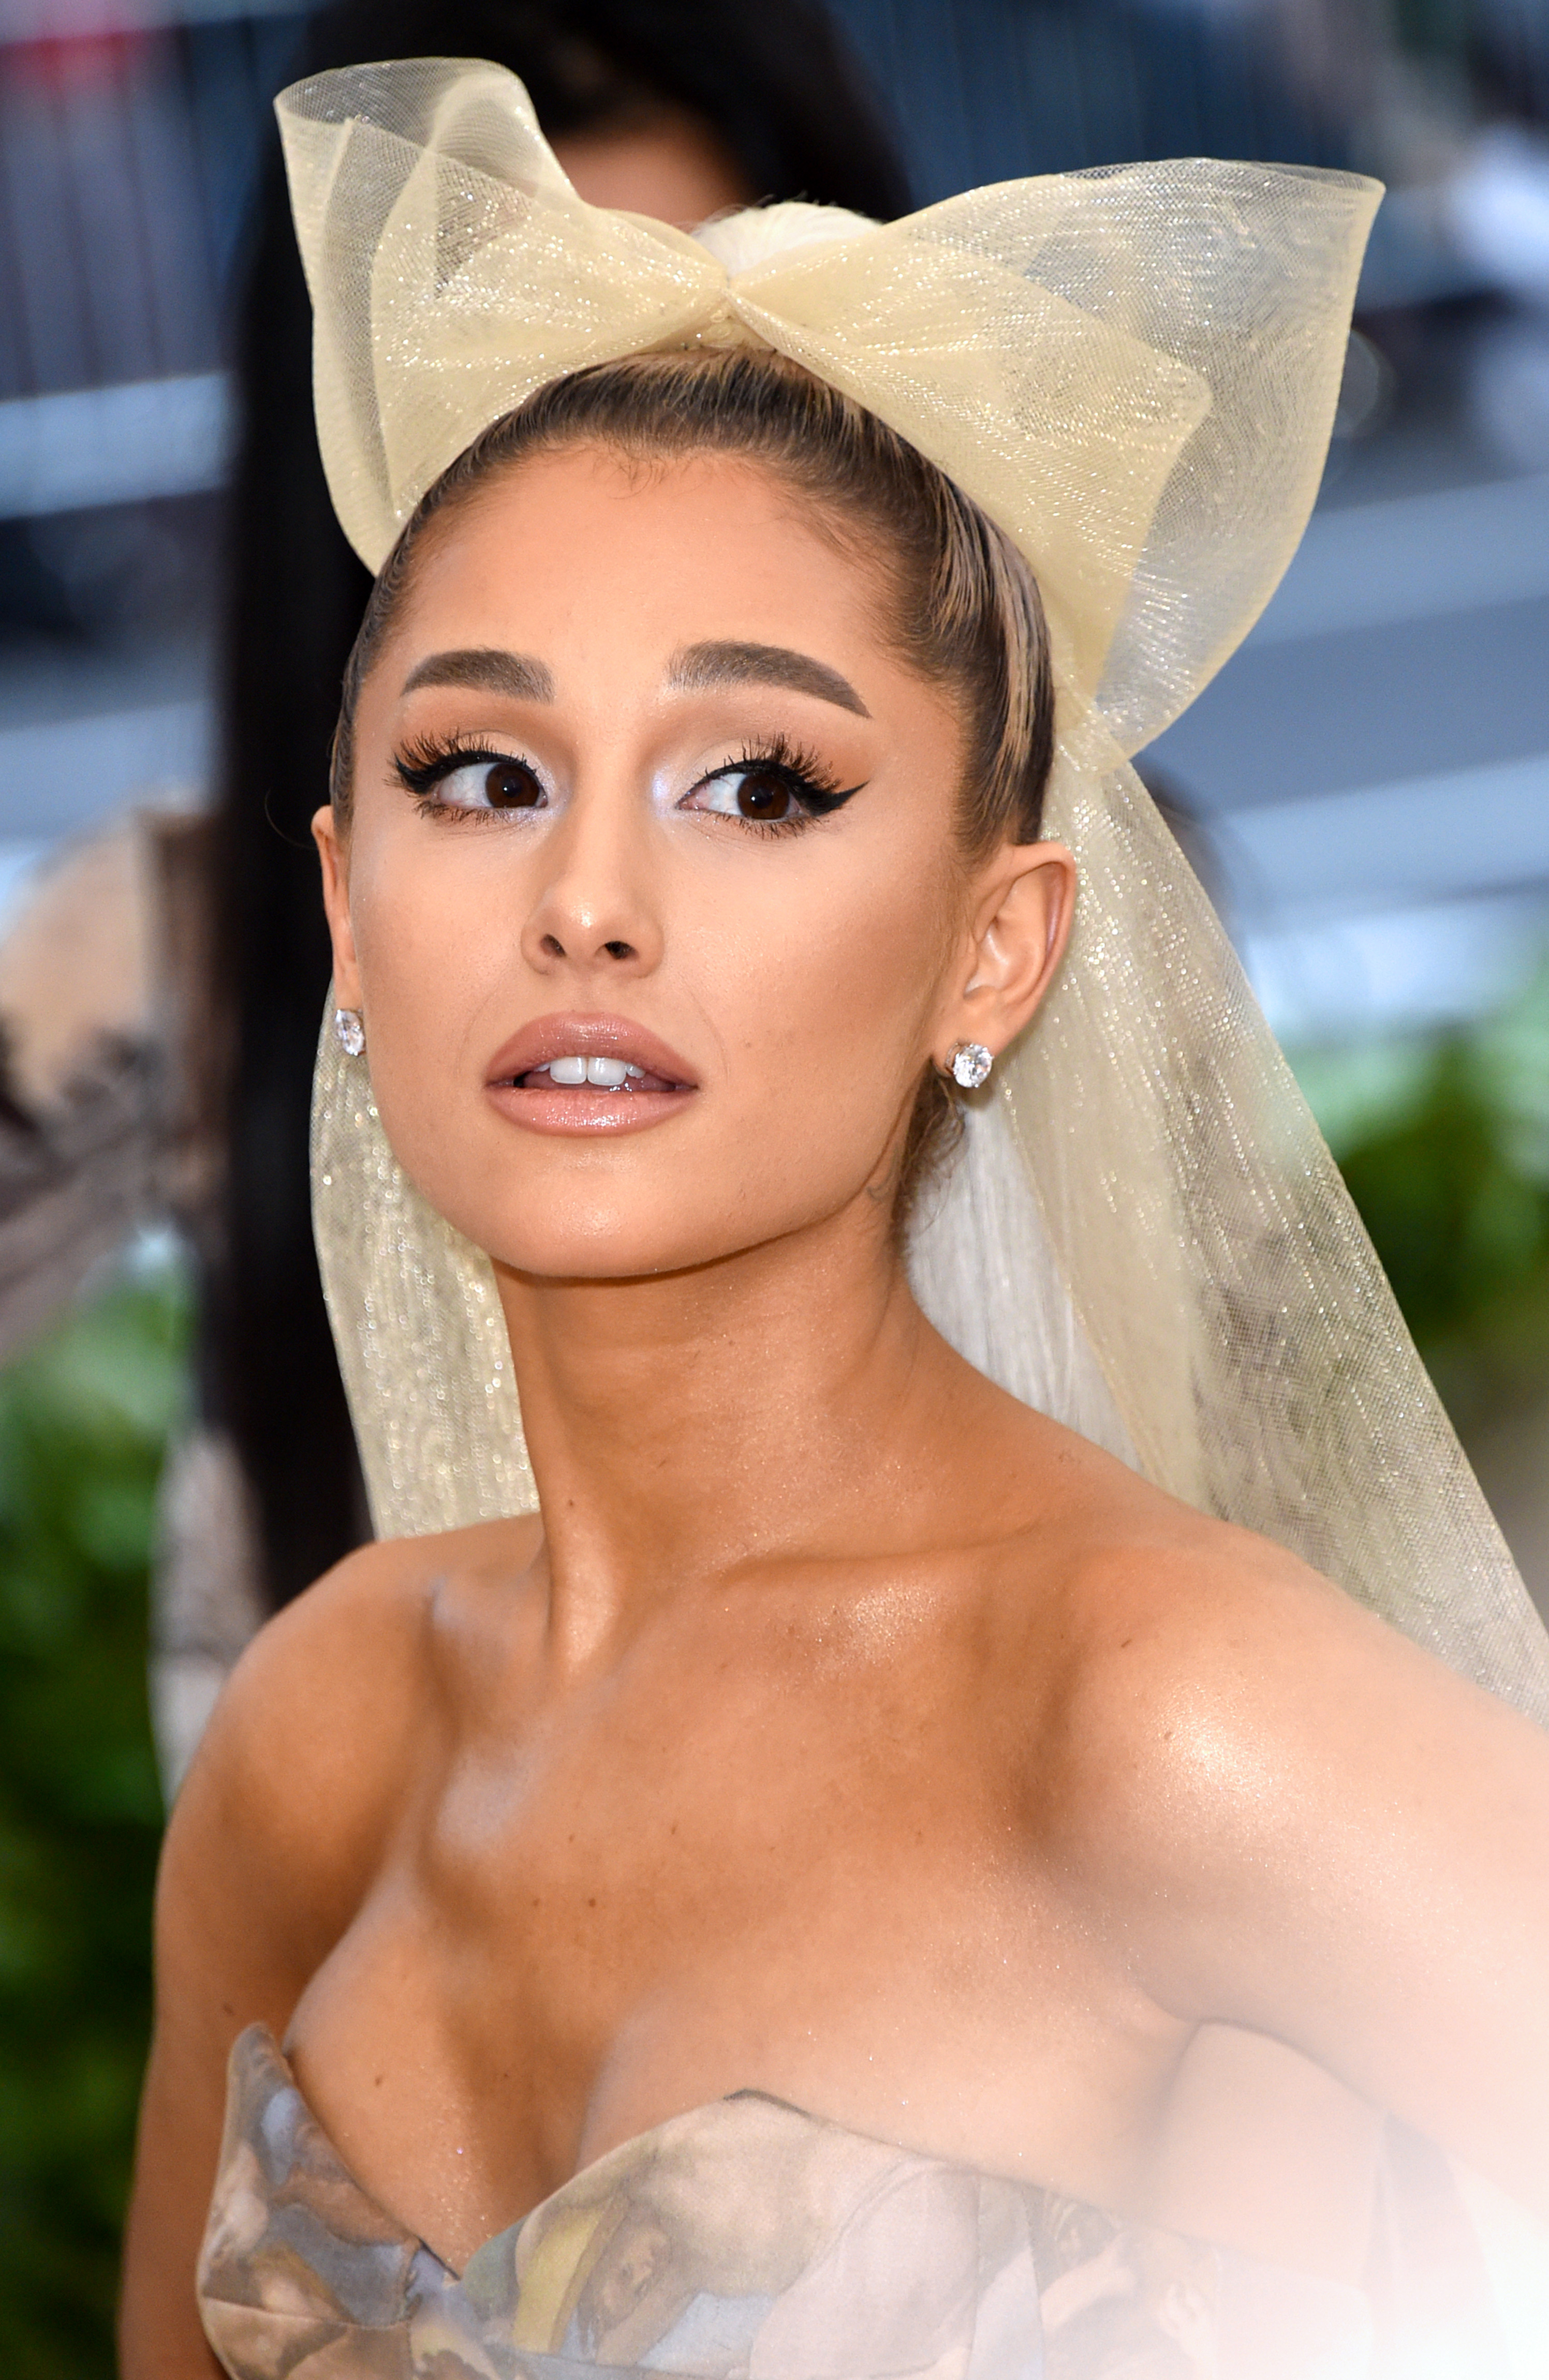 Ariana Grande ditched her signature ponytail and wore the Sistine Chapel ceiling on her Met Gala gown